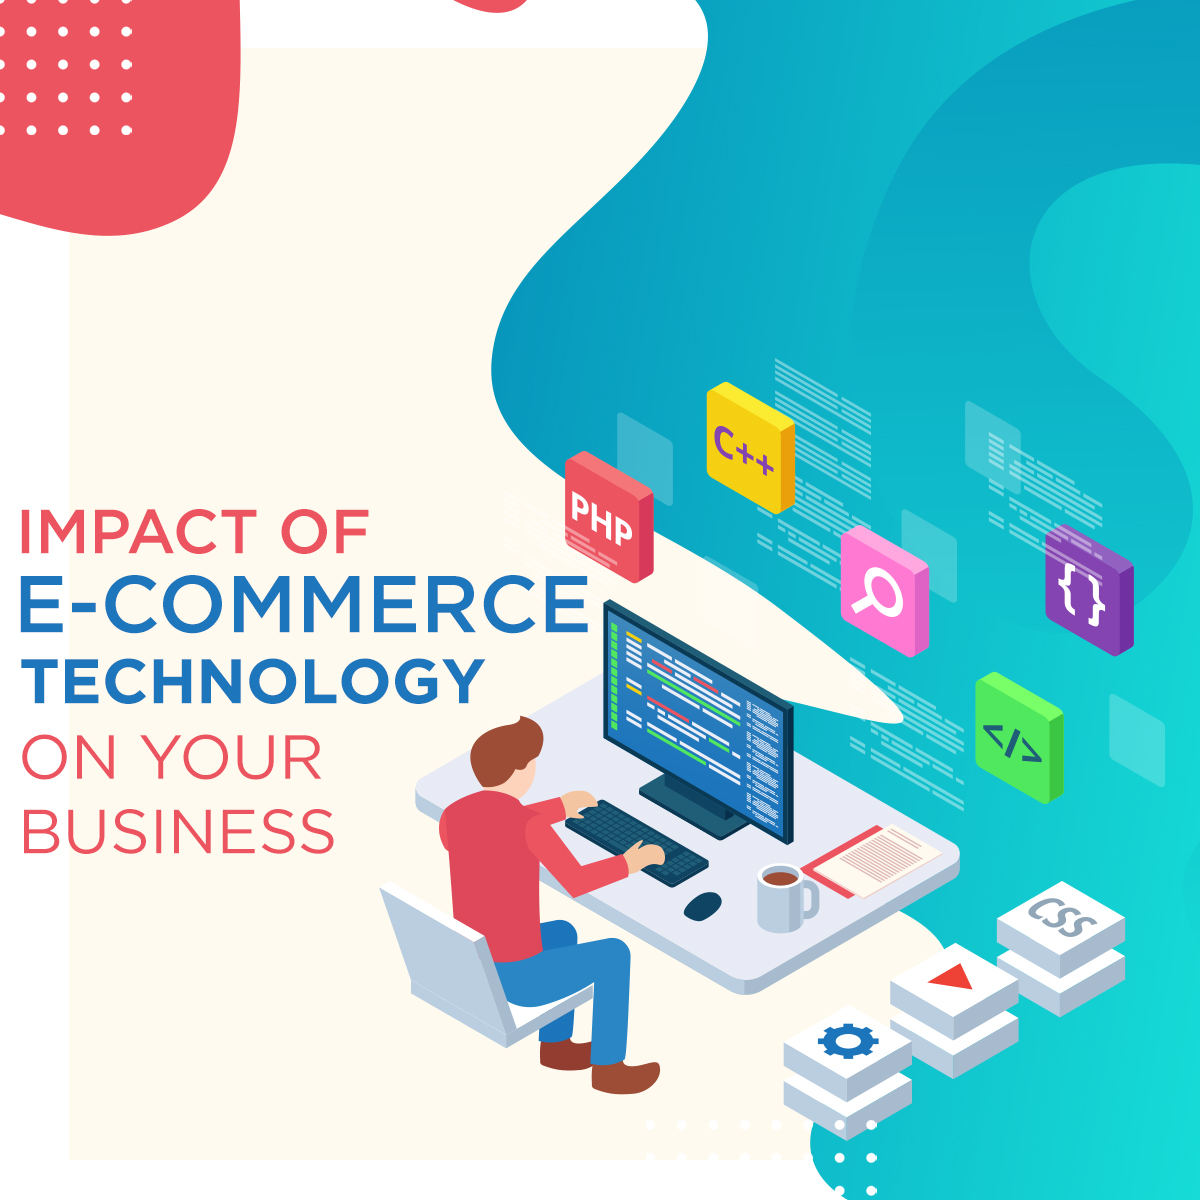 banner impact of e-commerce technology on your business